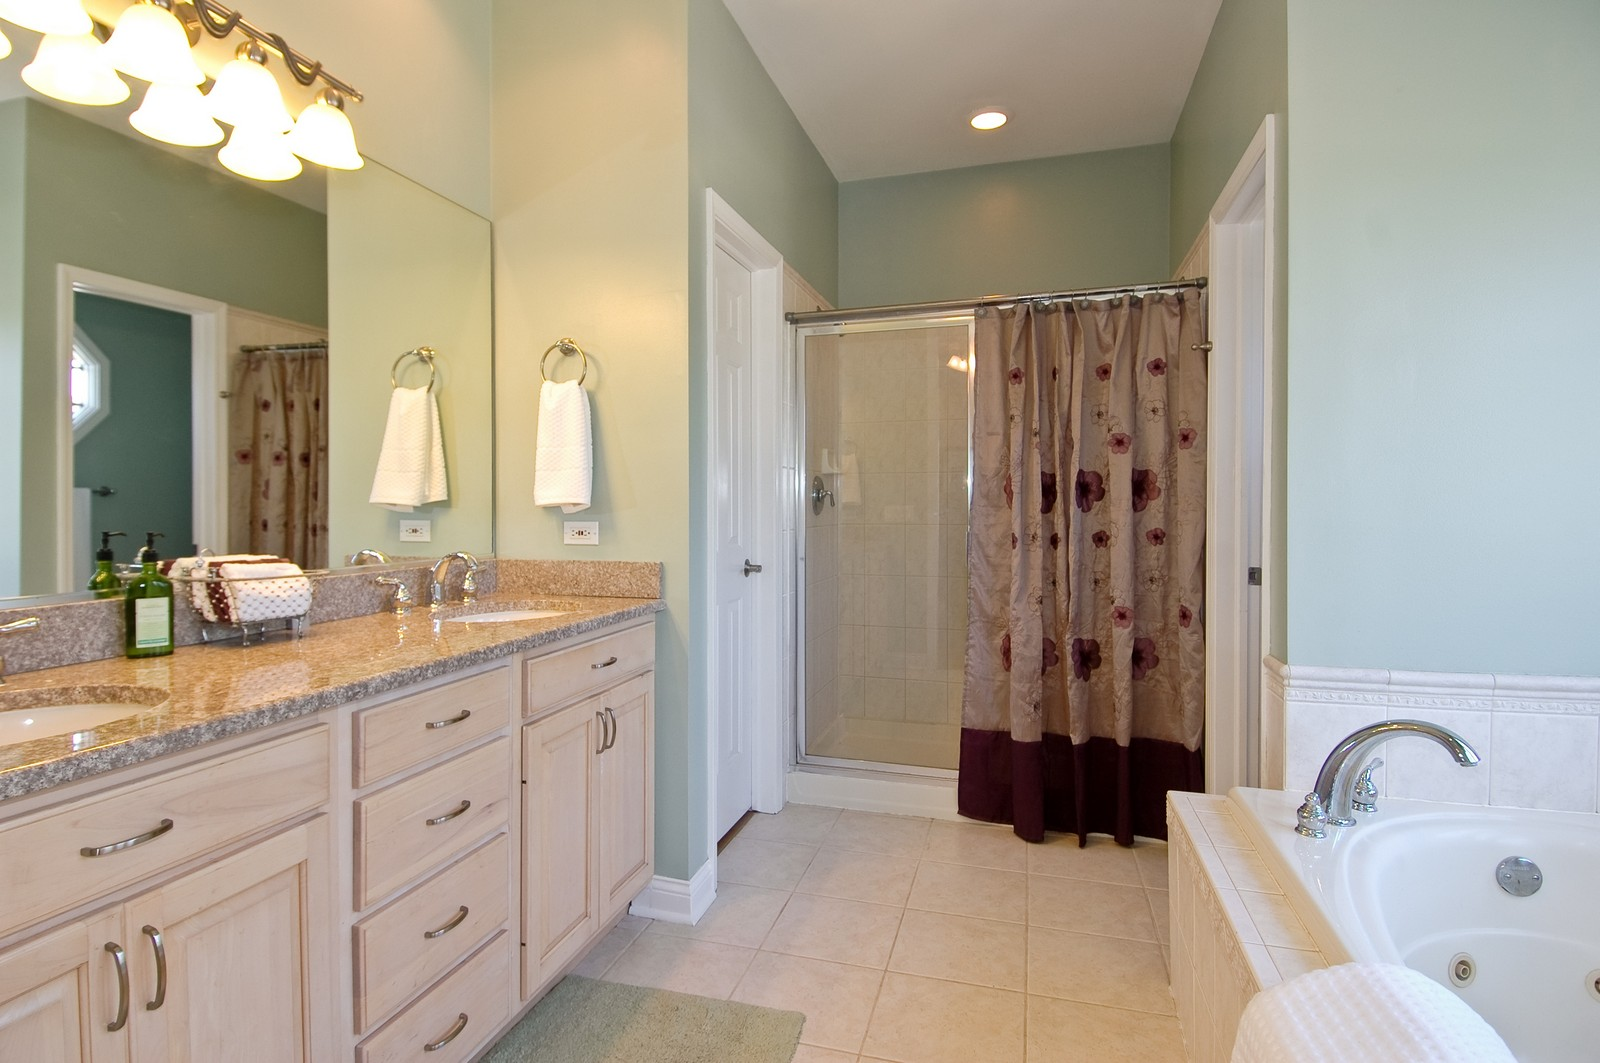 Real Estate Photography - 40W960 Chippewa Pass, Elgin, IL, 60124 - Luxury Master Bathroom with Whirlpool